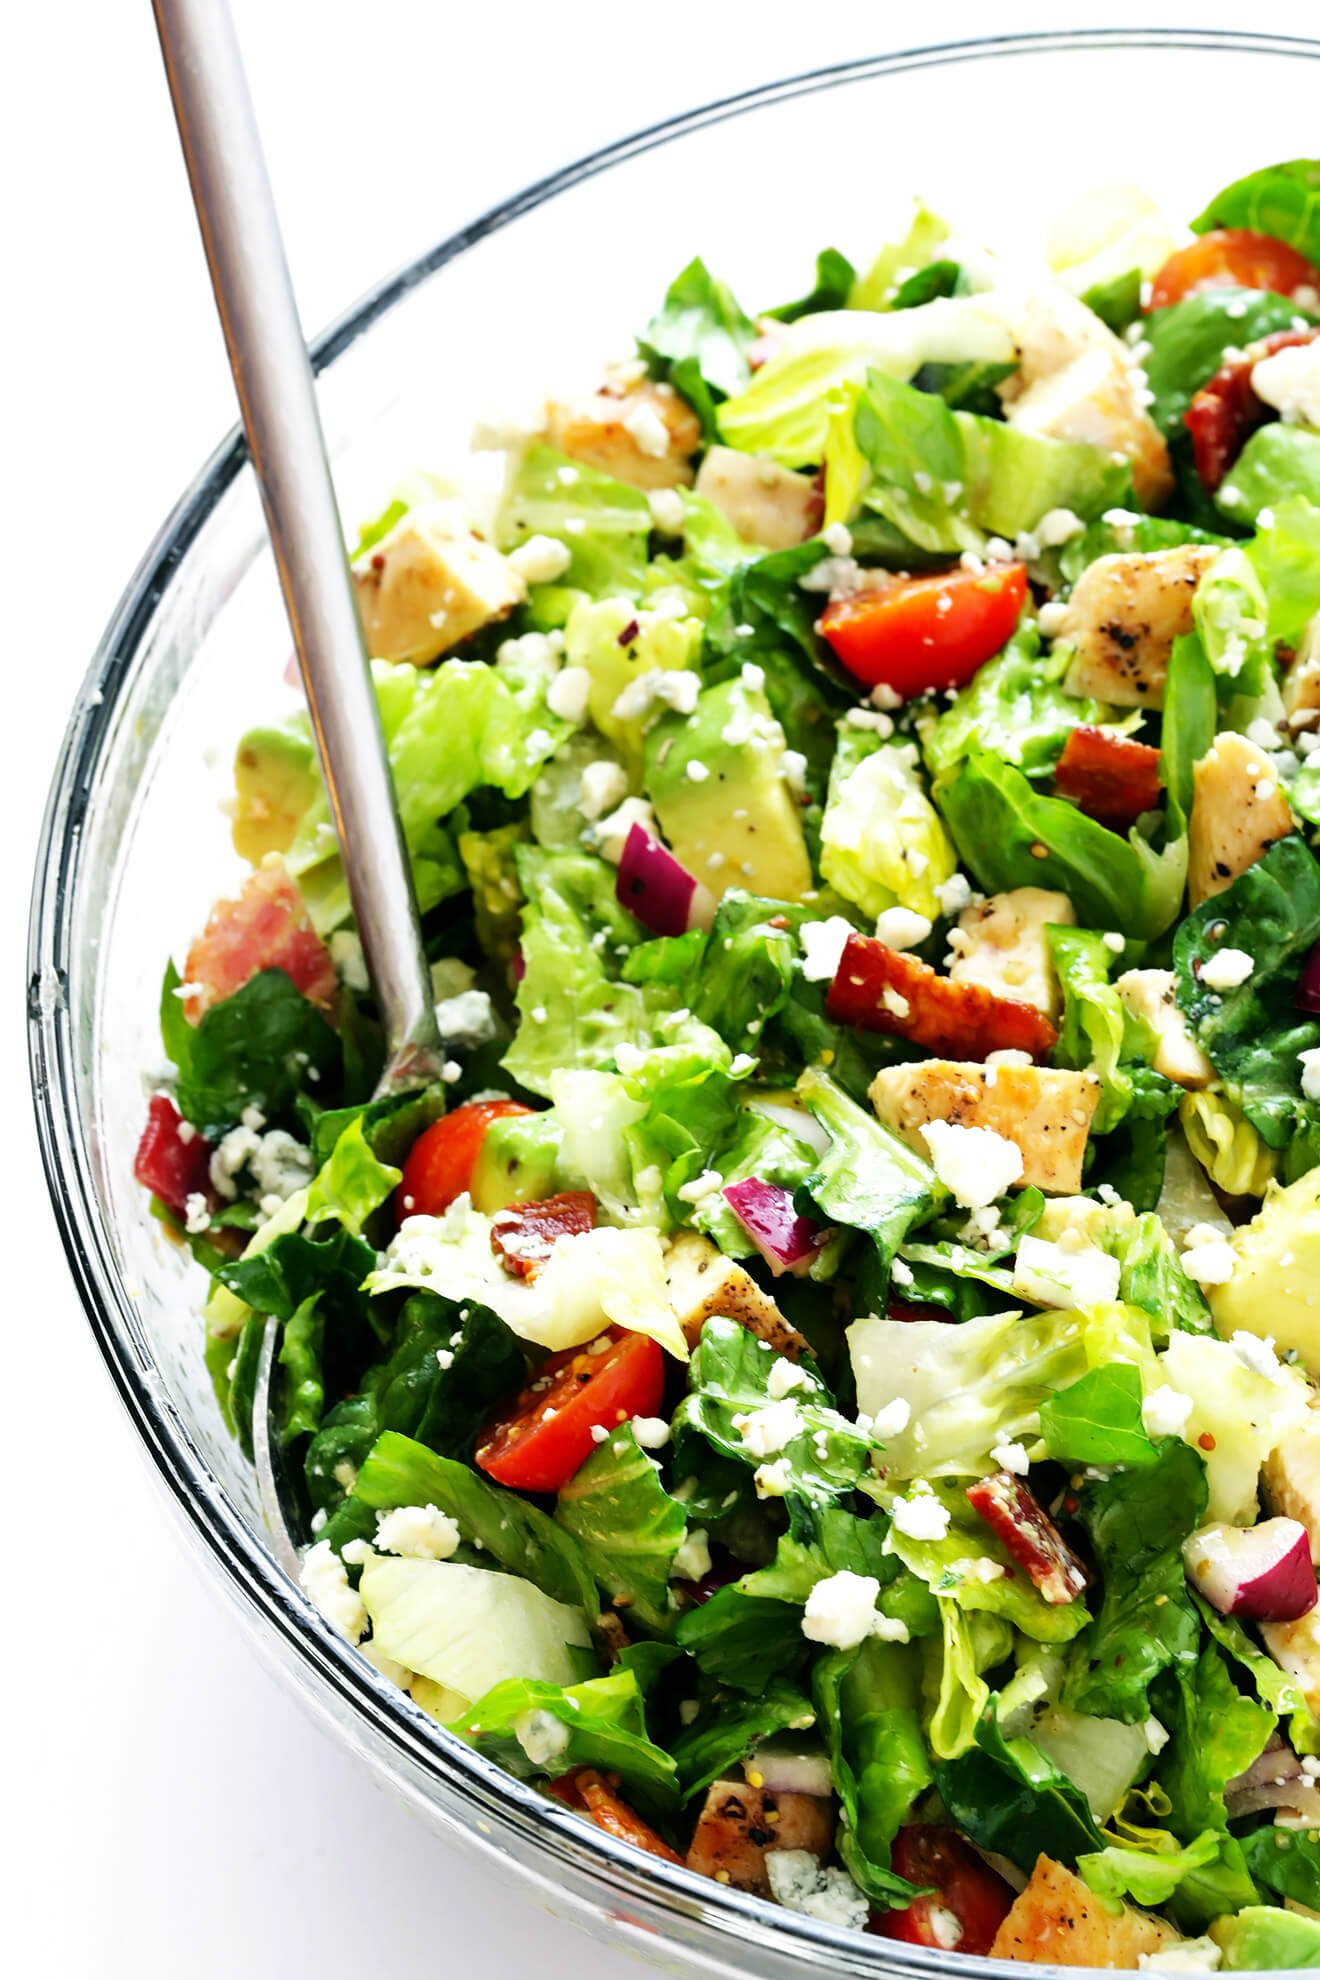 This Chicken, Bacon and Avocado Chopped Salad is tossed with a simple red wine vinaigrette, and tastes so fresh and delicious! | gimmesomeoven.com